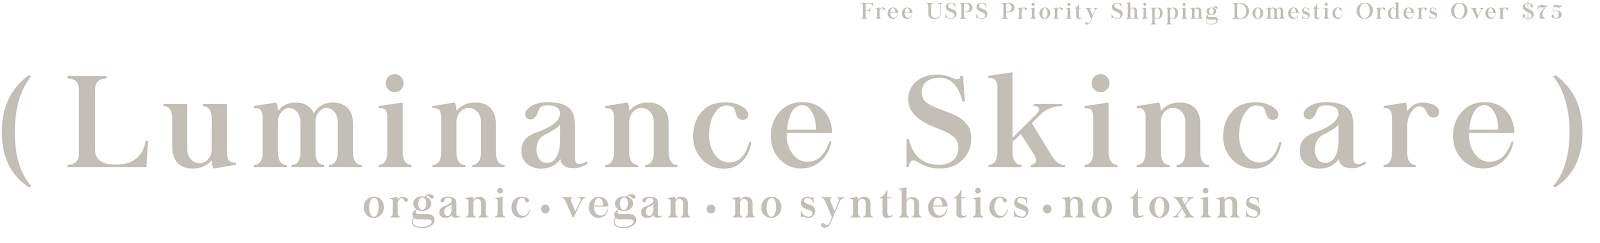 Luminace Skincare